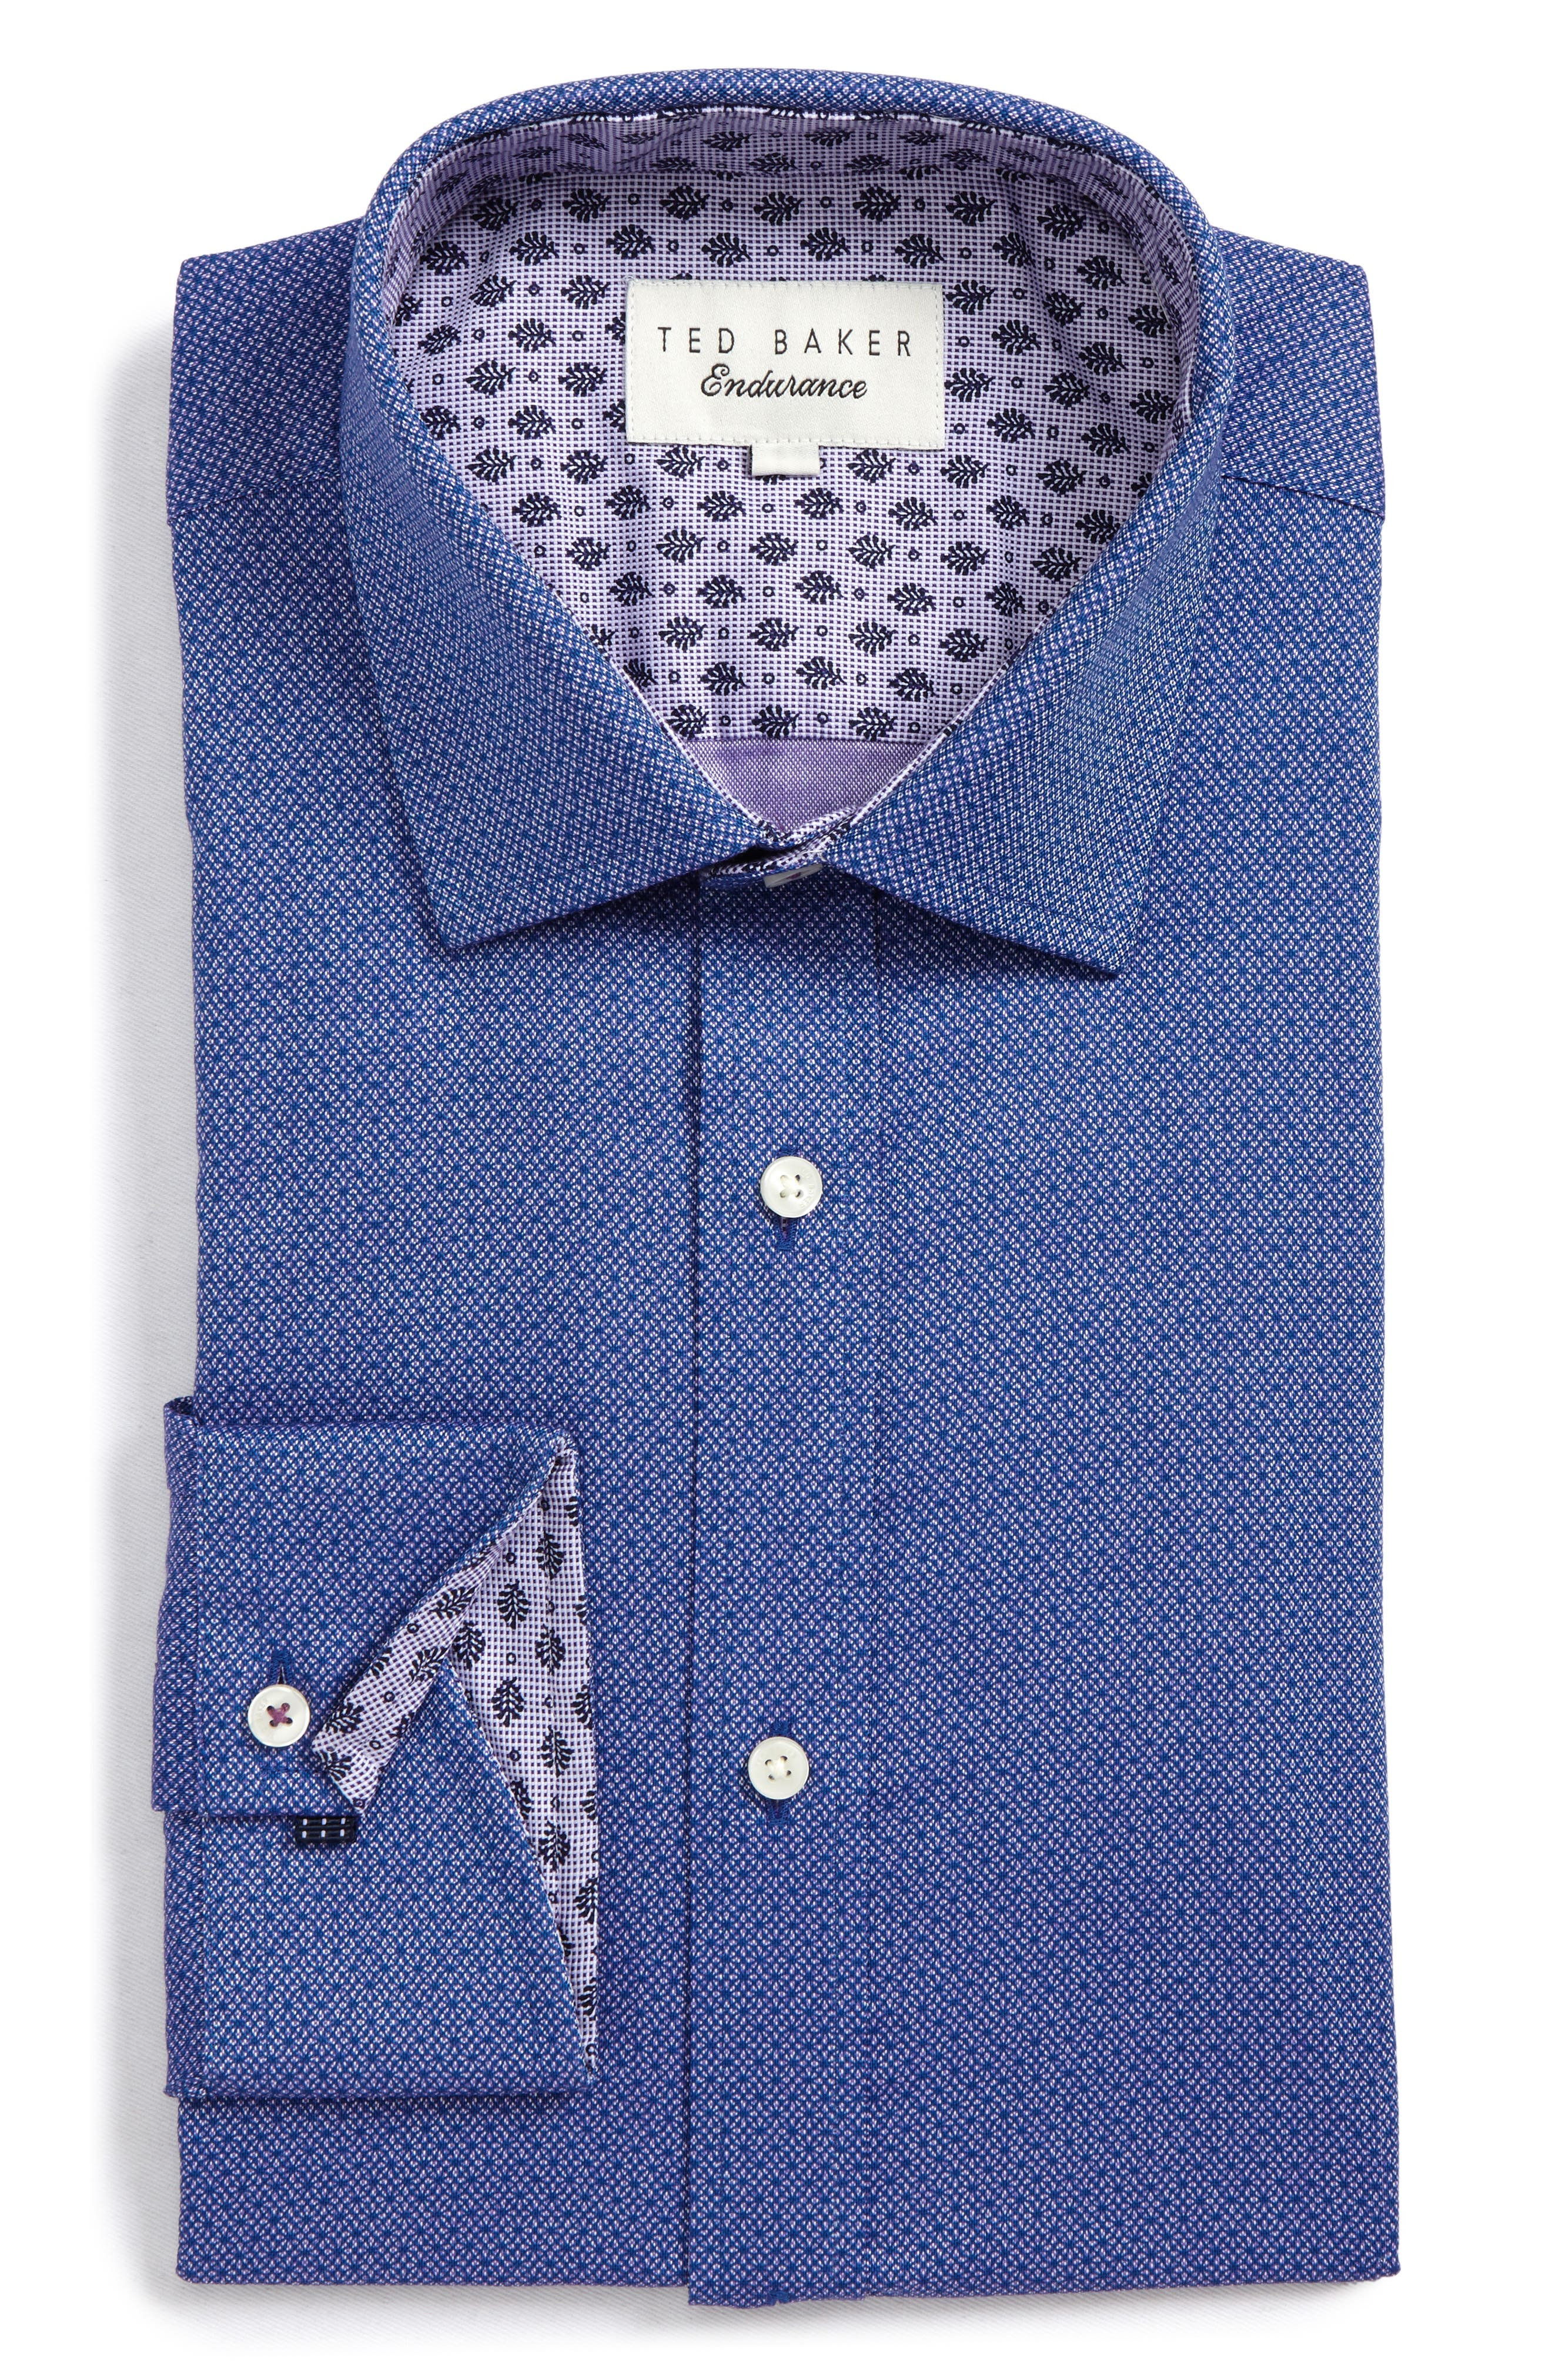 Ted Baker London Endurance Murphy Trim Fit Dress Shirt